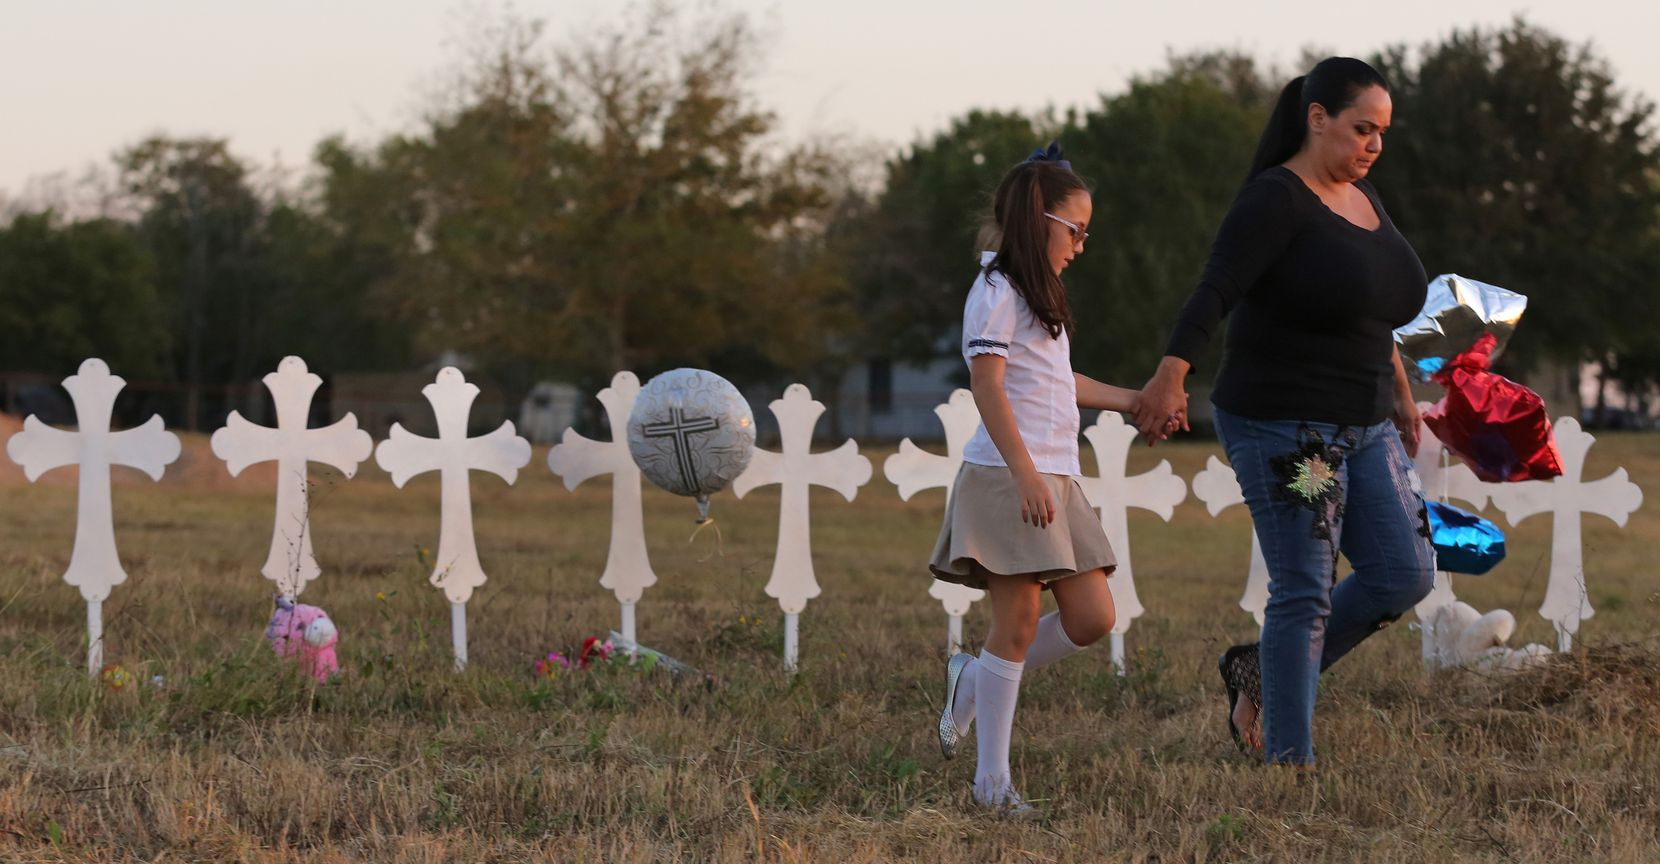 Eight-year-old Heather Cooper and her mother, Meredith Cooper, of San Antonio walk away after placing a remembrance at the 26 crosses placed in a field in Sutherland Springs to honor those who were killed in Sunday's mass shooting.